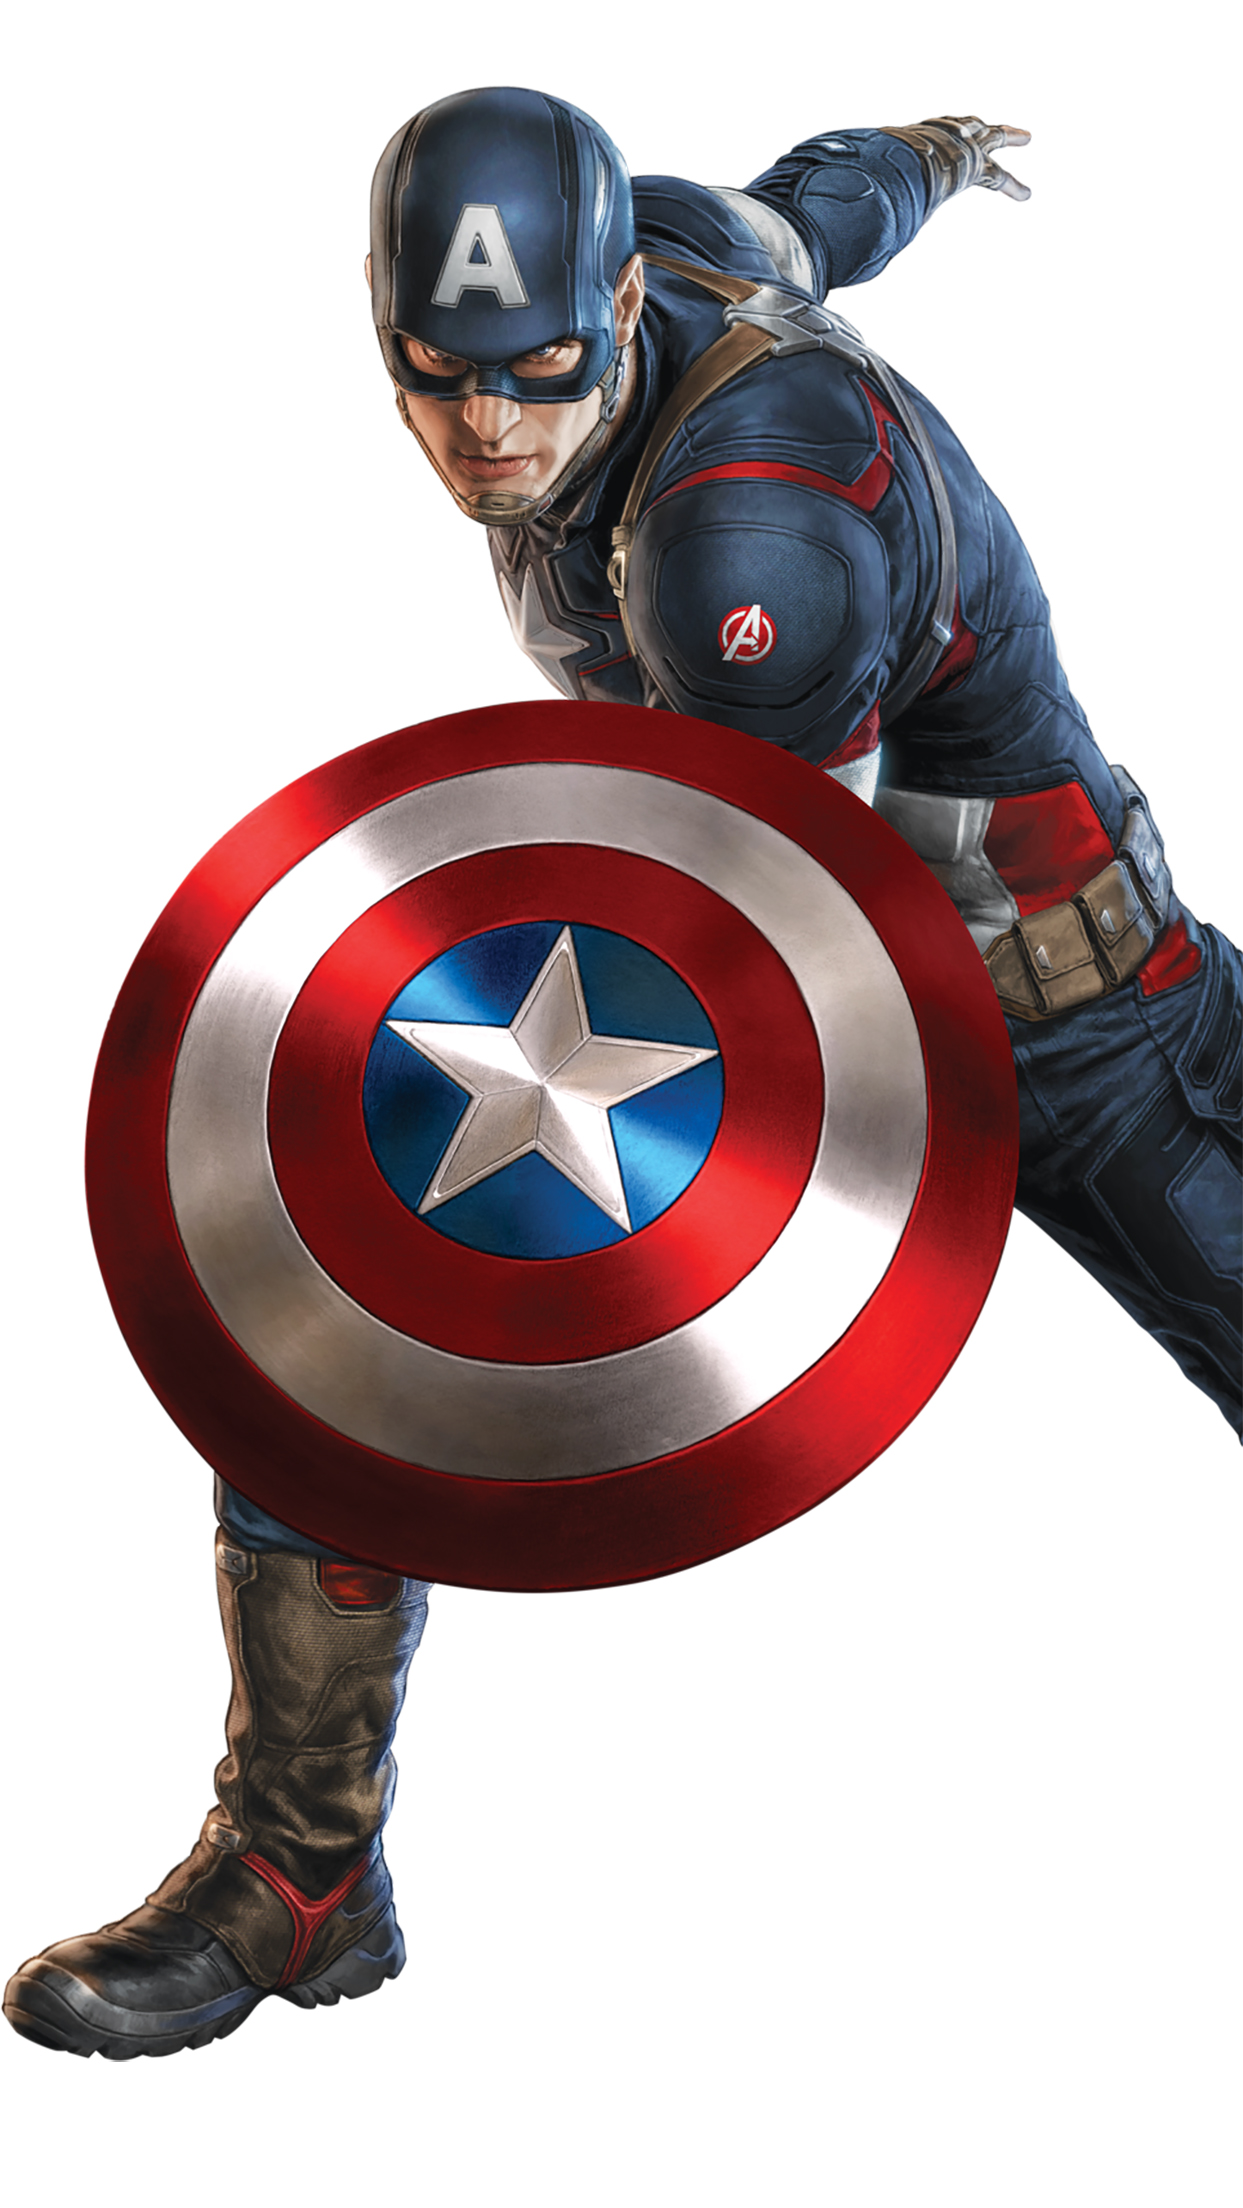 Back To 95 Captain America Iphone Wallpapers - Marvel Stickers For Whatsapp , HD Wallpaper & Backgrounds